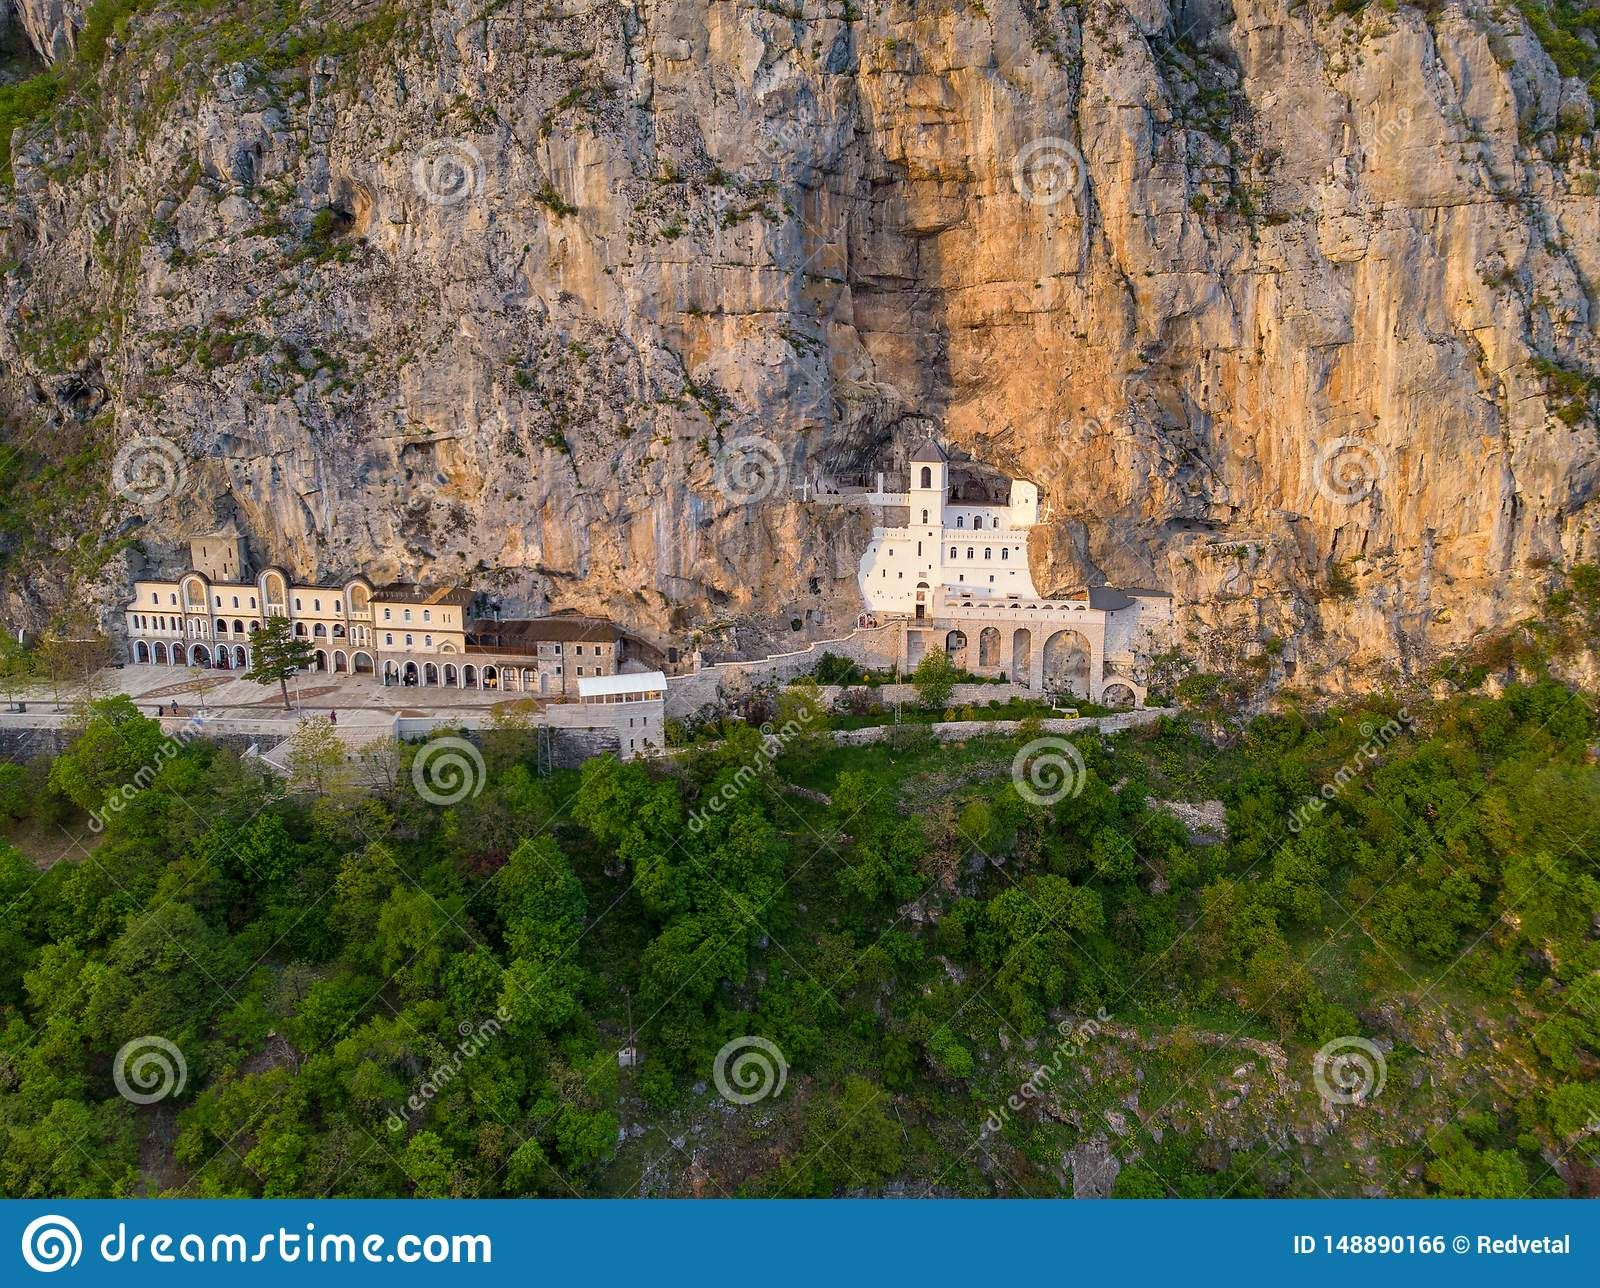 Monastery of Ostrog is a monastery of Serbian Orthodox Church placed against an almost vertical rock of Ostroska Greda, Montenegro